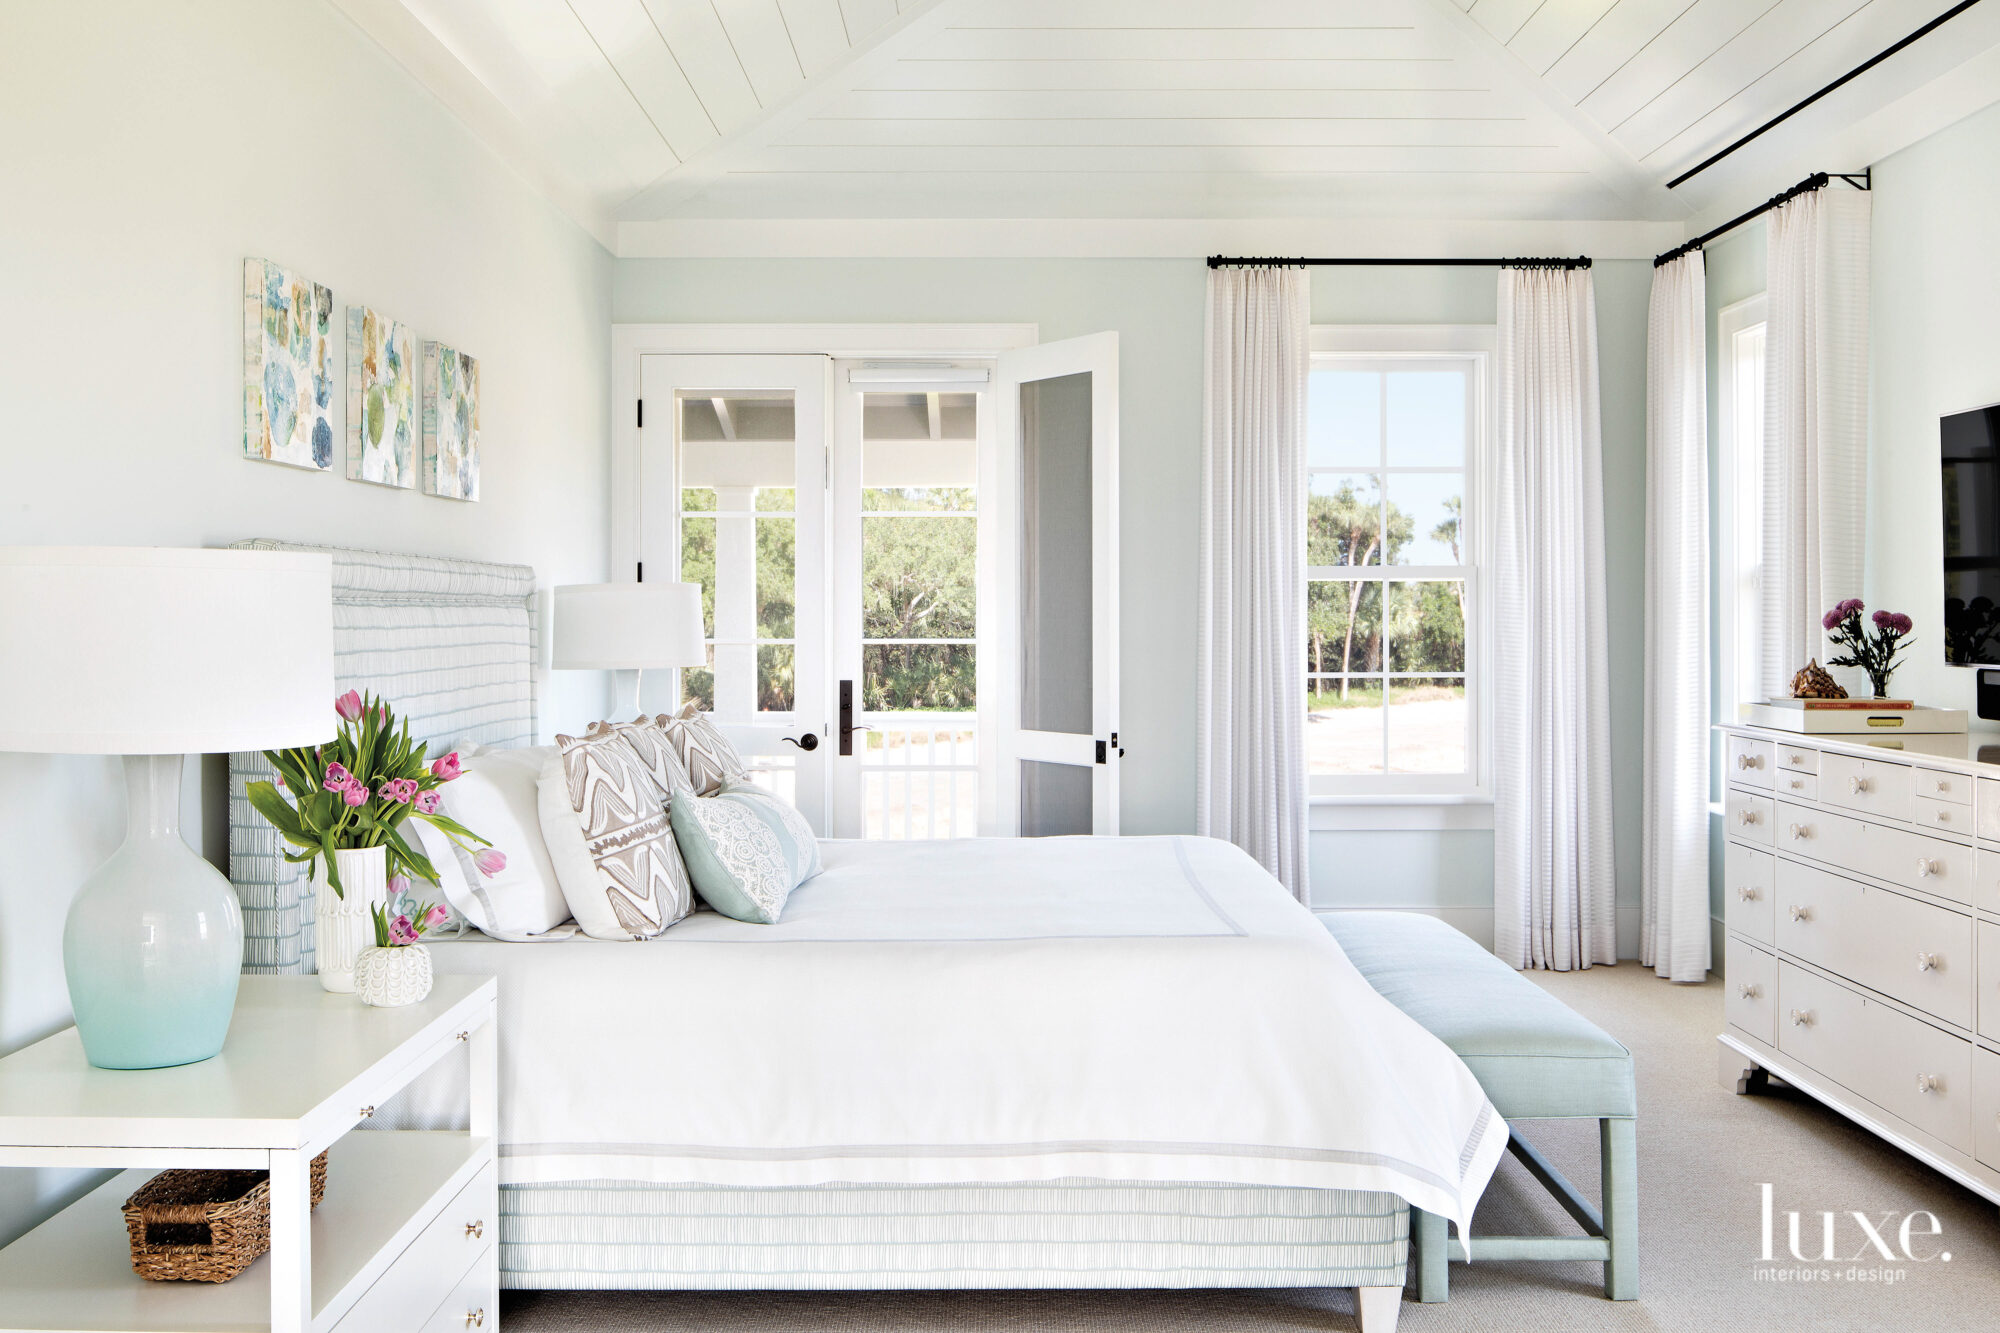 Bedroom with white linens and...